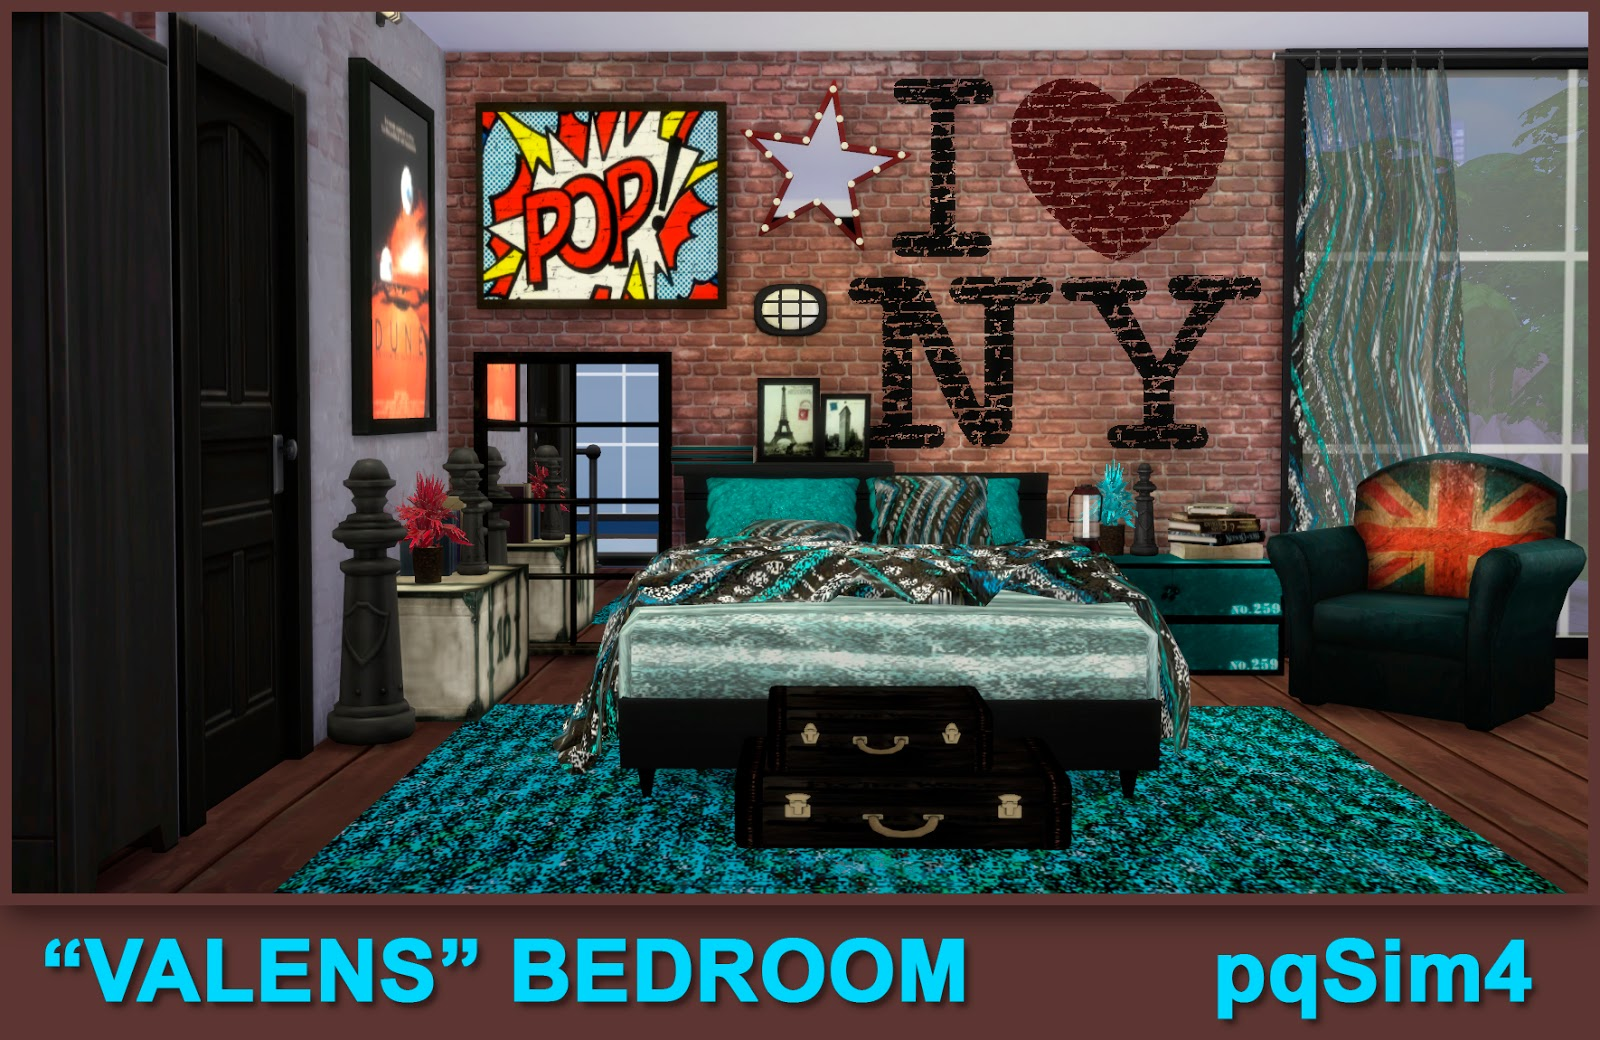 Valens bed room sims 4 custom content for Dormitorio sims 4